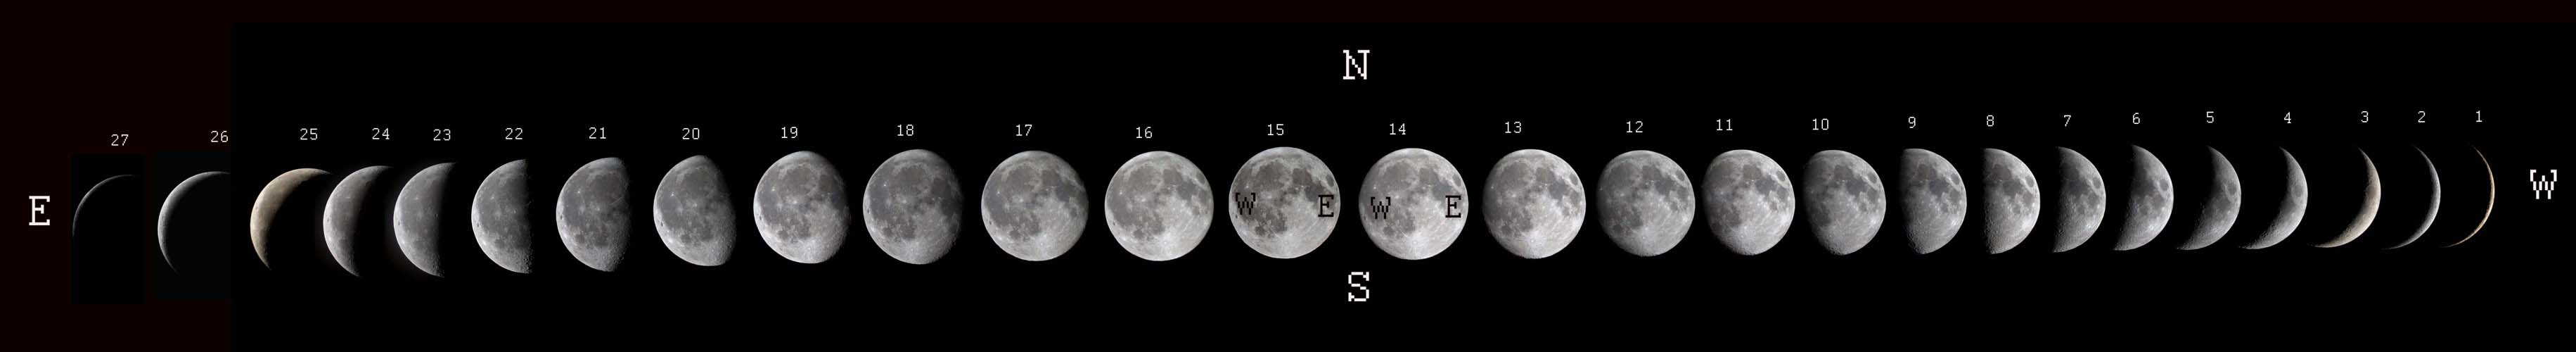 A brilliant animation of the Moon phases by Tim Hunter